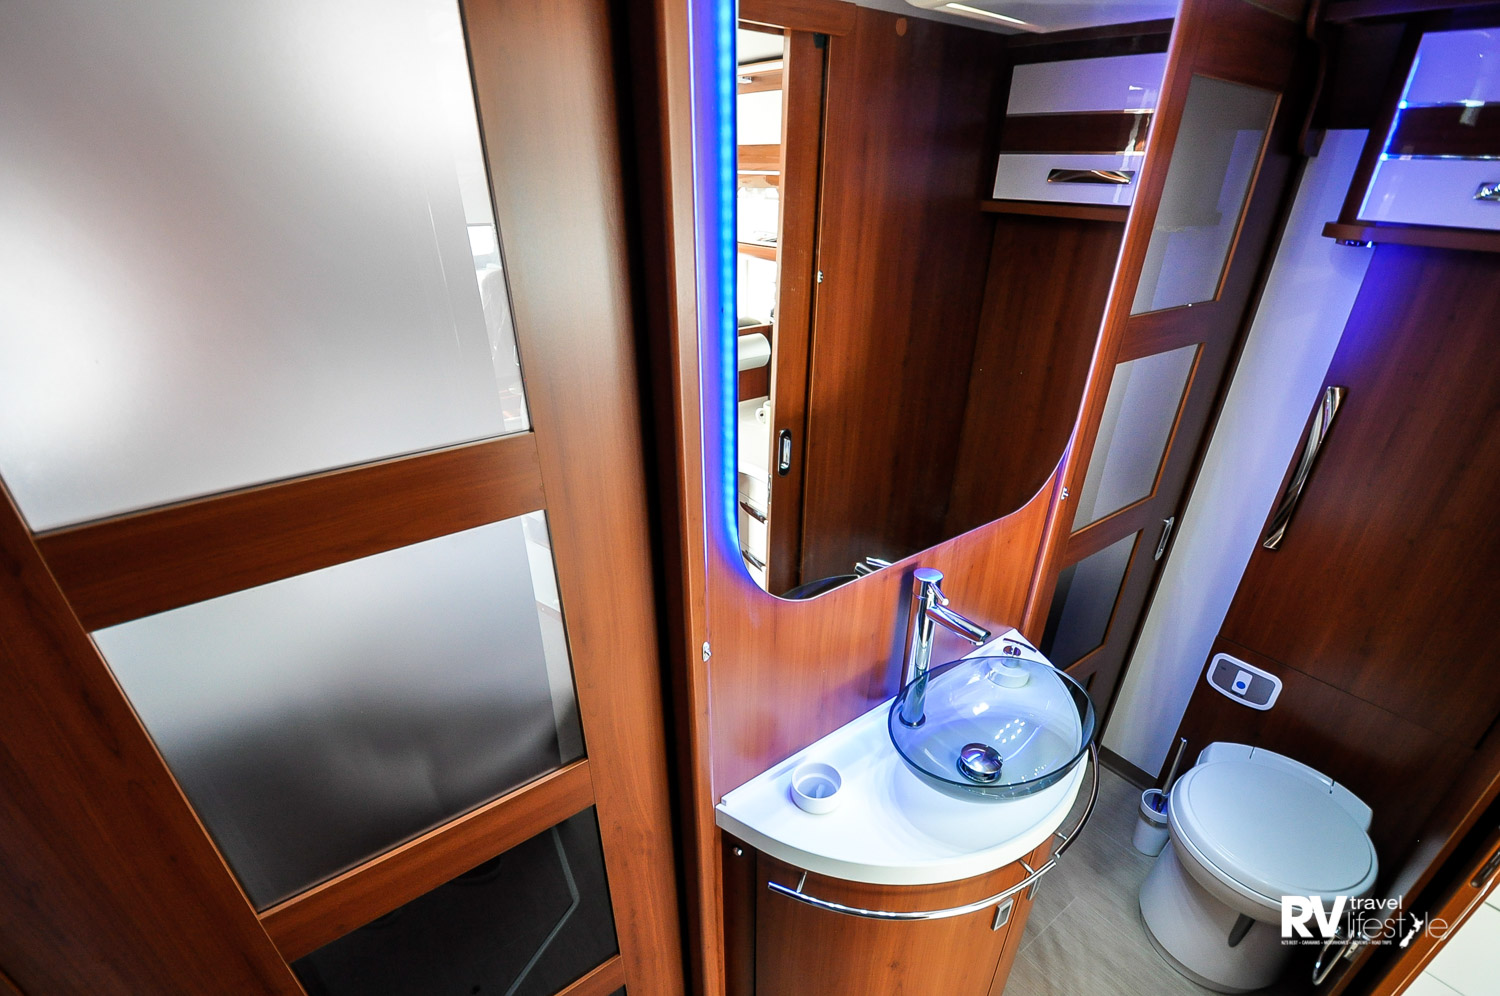 Bathroom in the K-Yacht 79 separate-bedroom model. The sliding glass doors give privacy between the ensuite, front living area and the bedroom. LED lighting throughout, full separate shower on one side, toilet and vanity the other